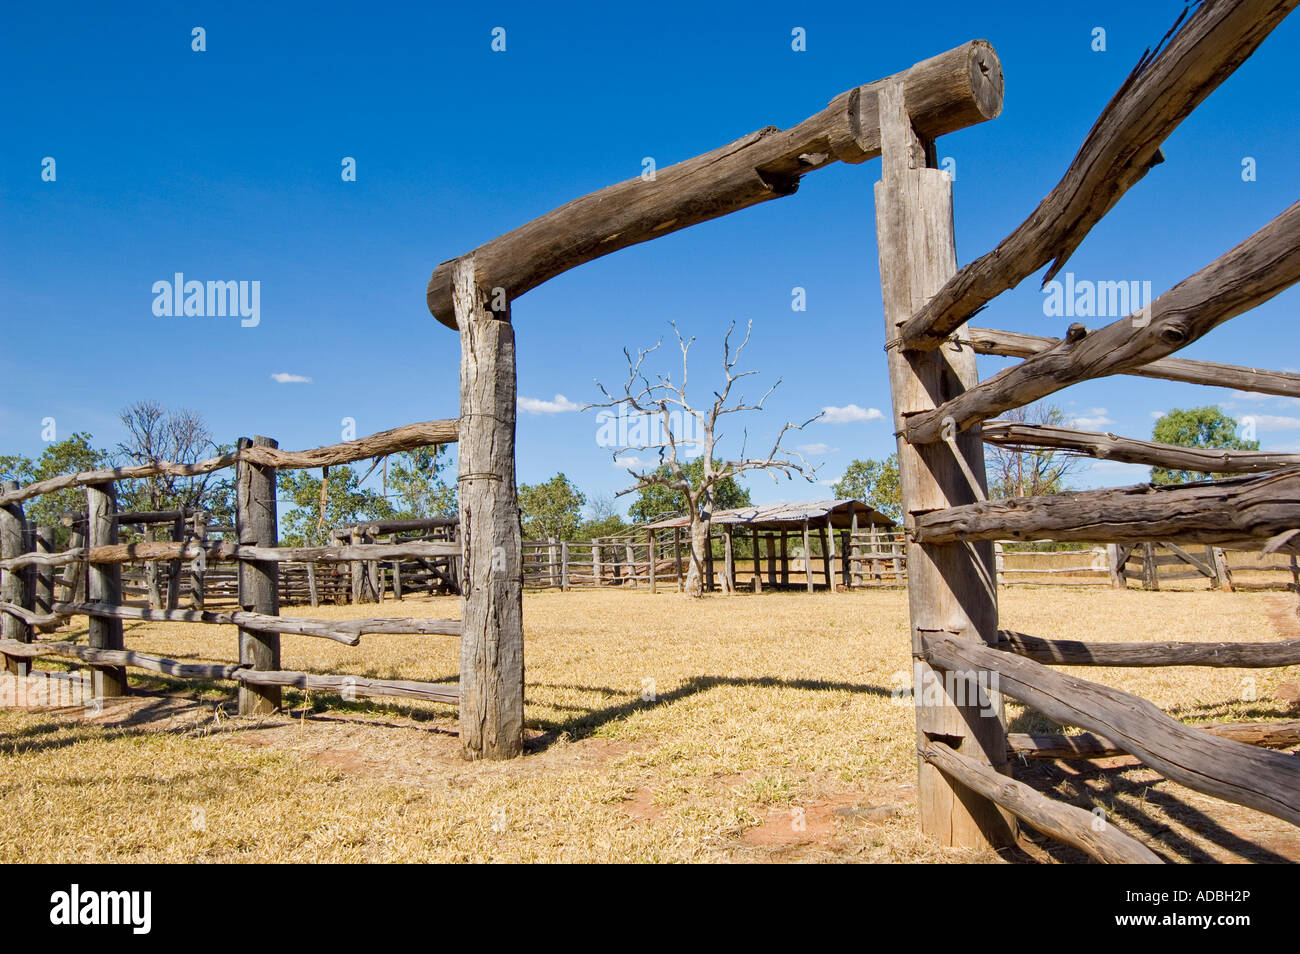 Wooden Cattle Yards Stock Photos Wooden Cattle Yards Stock Images